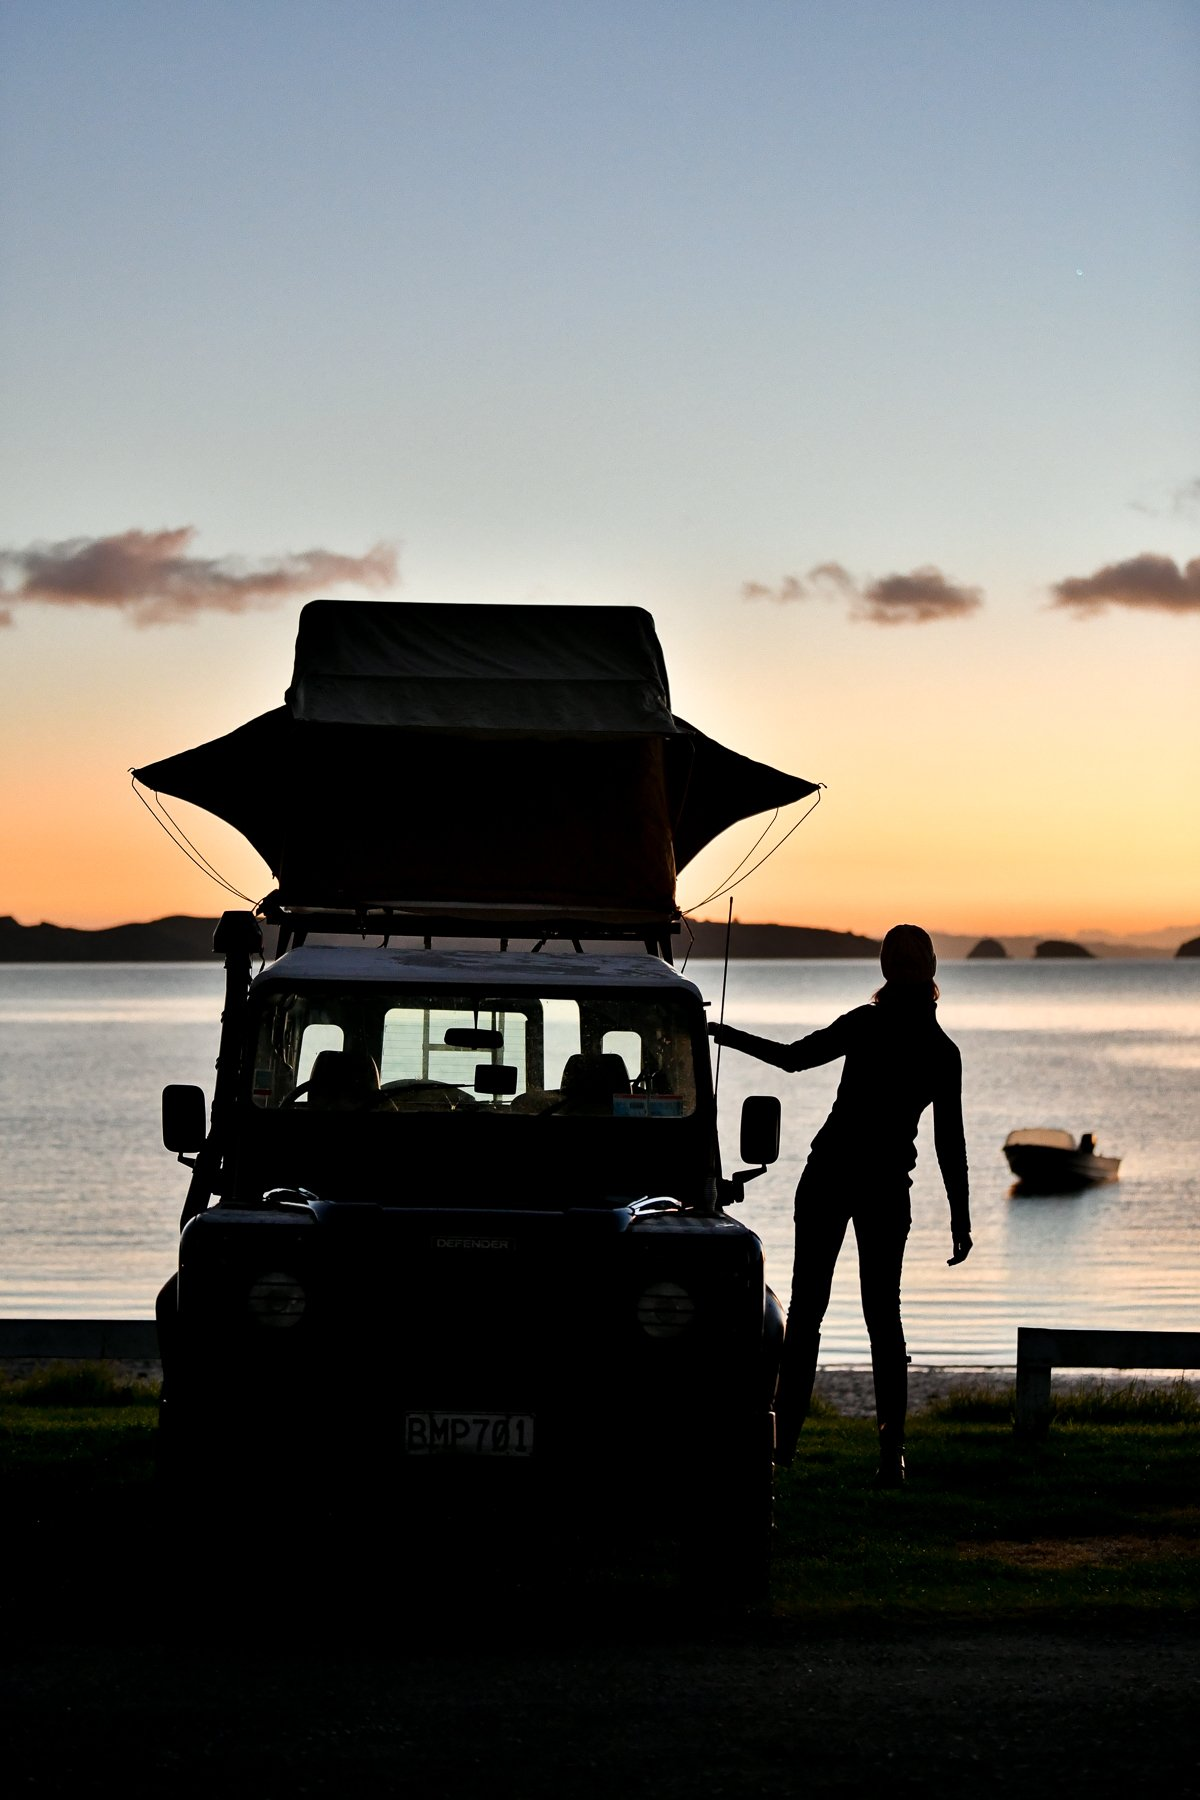 Stacie Flinner Land Rover Camping New Zealand-14